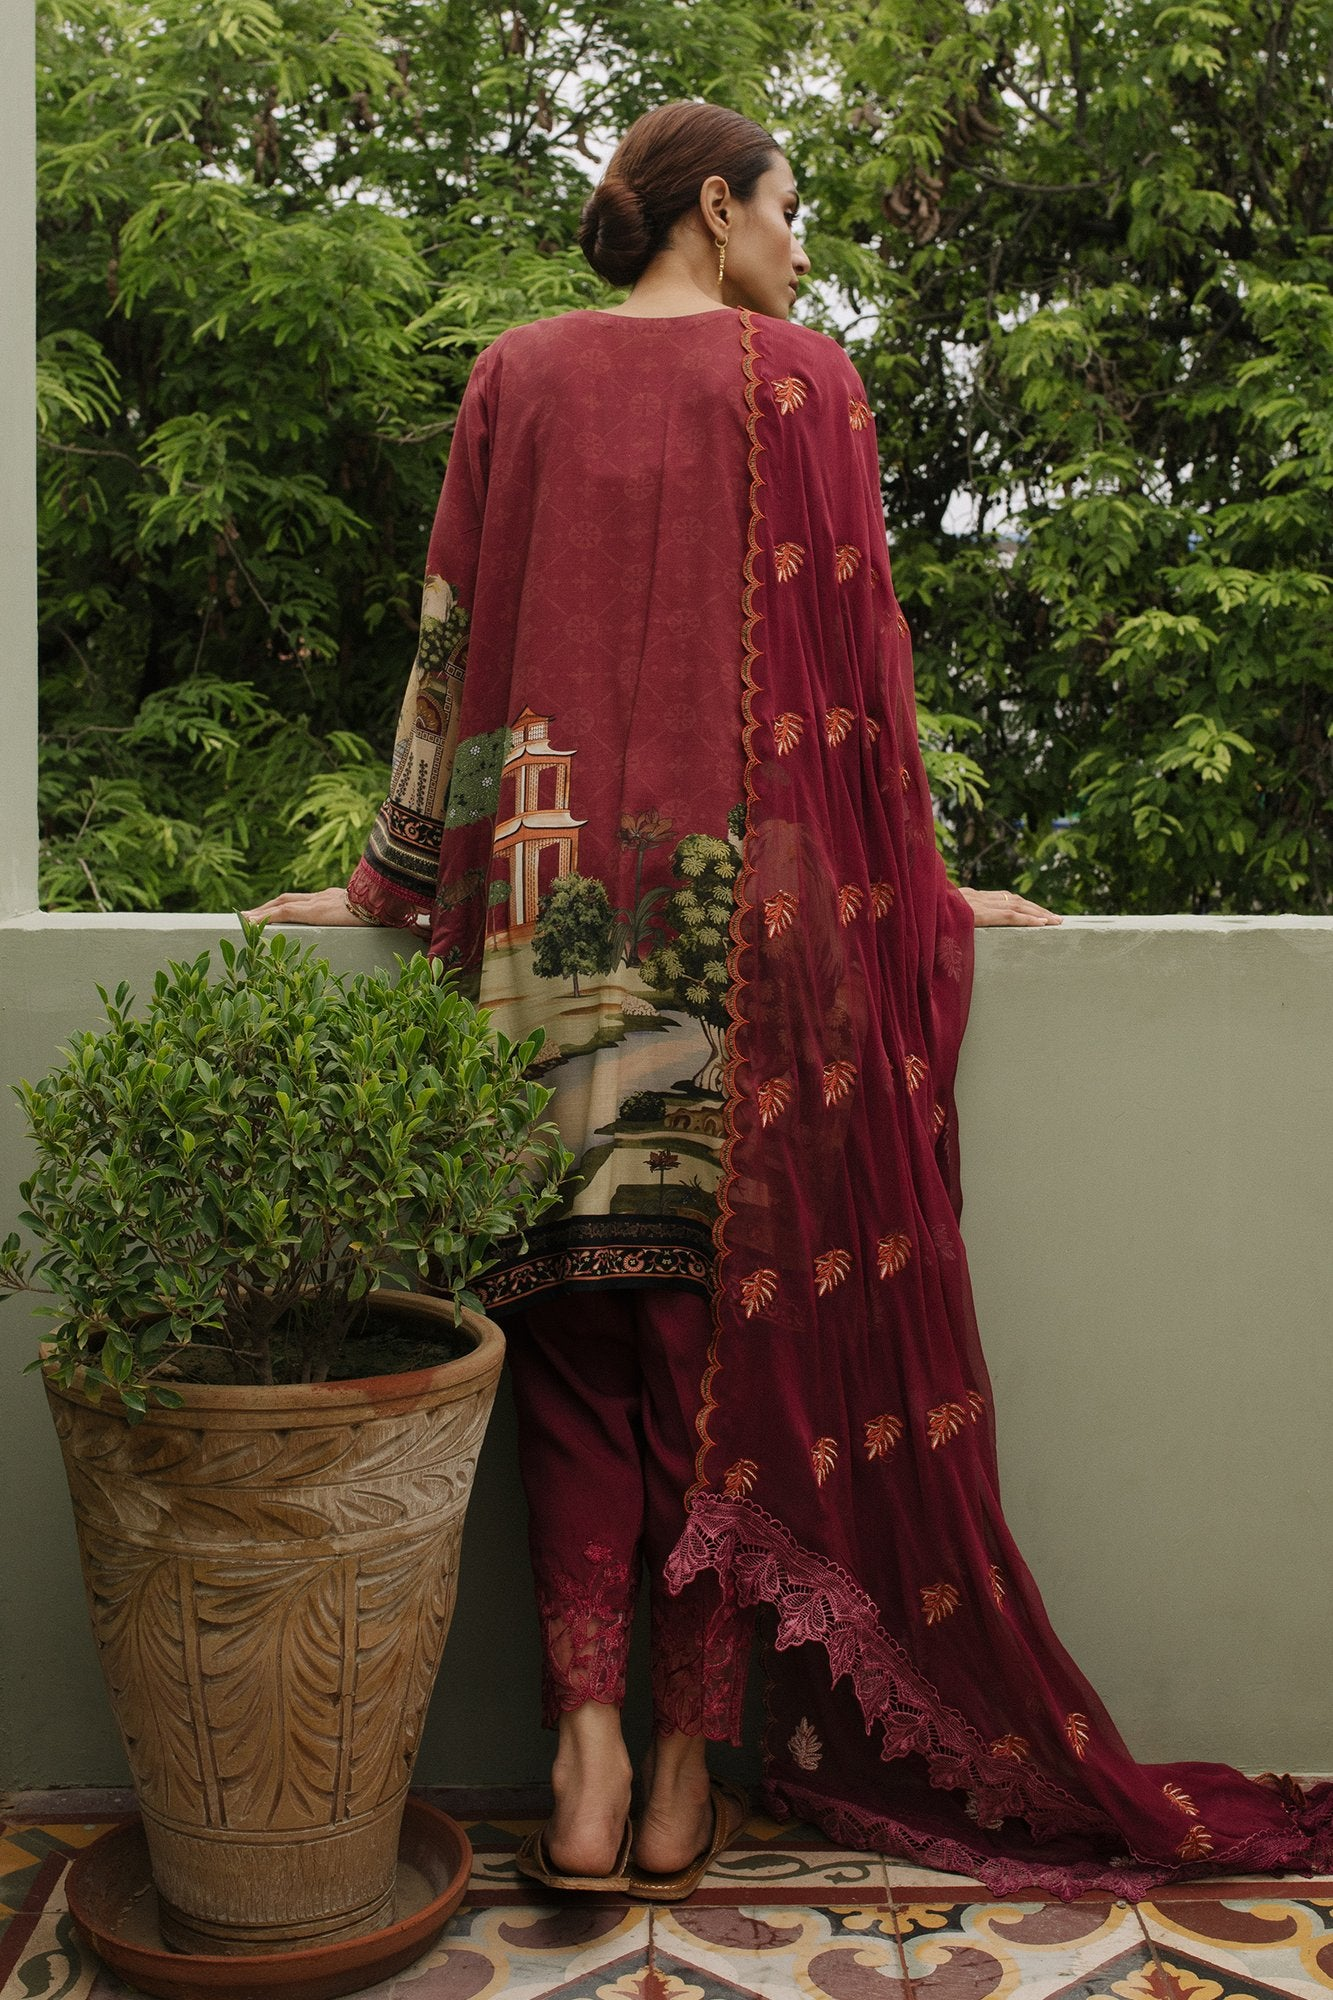 QLA-09 (Qalamkar - Qline Linen Collection 2019)